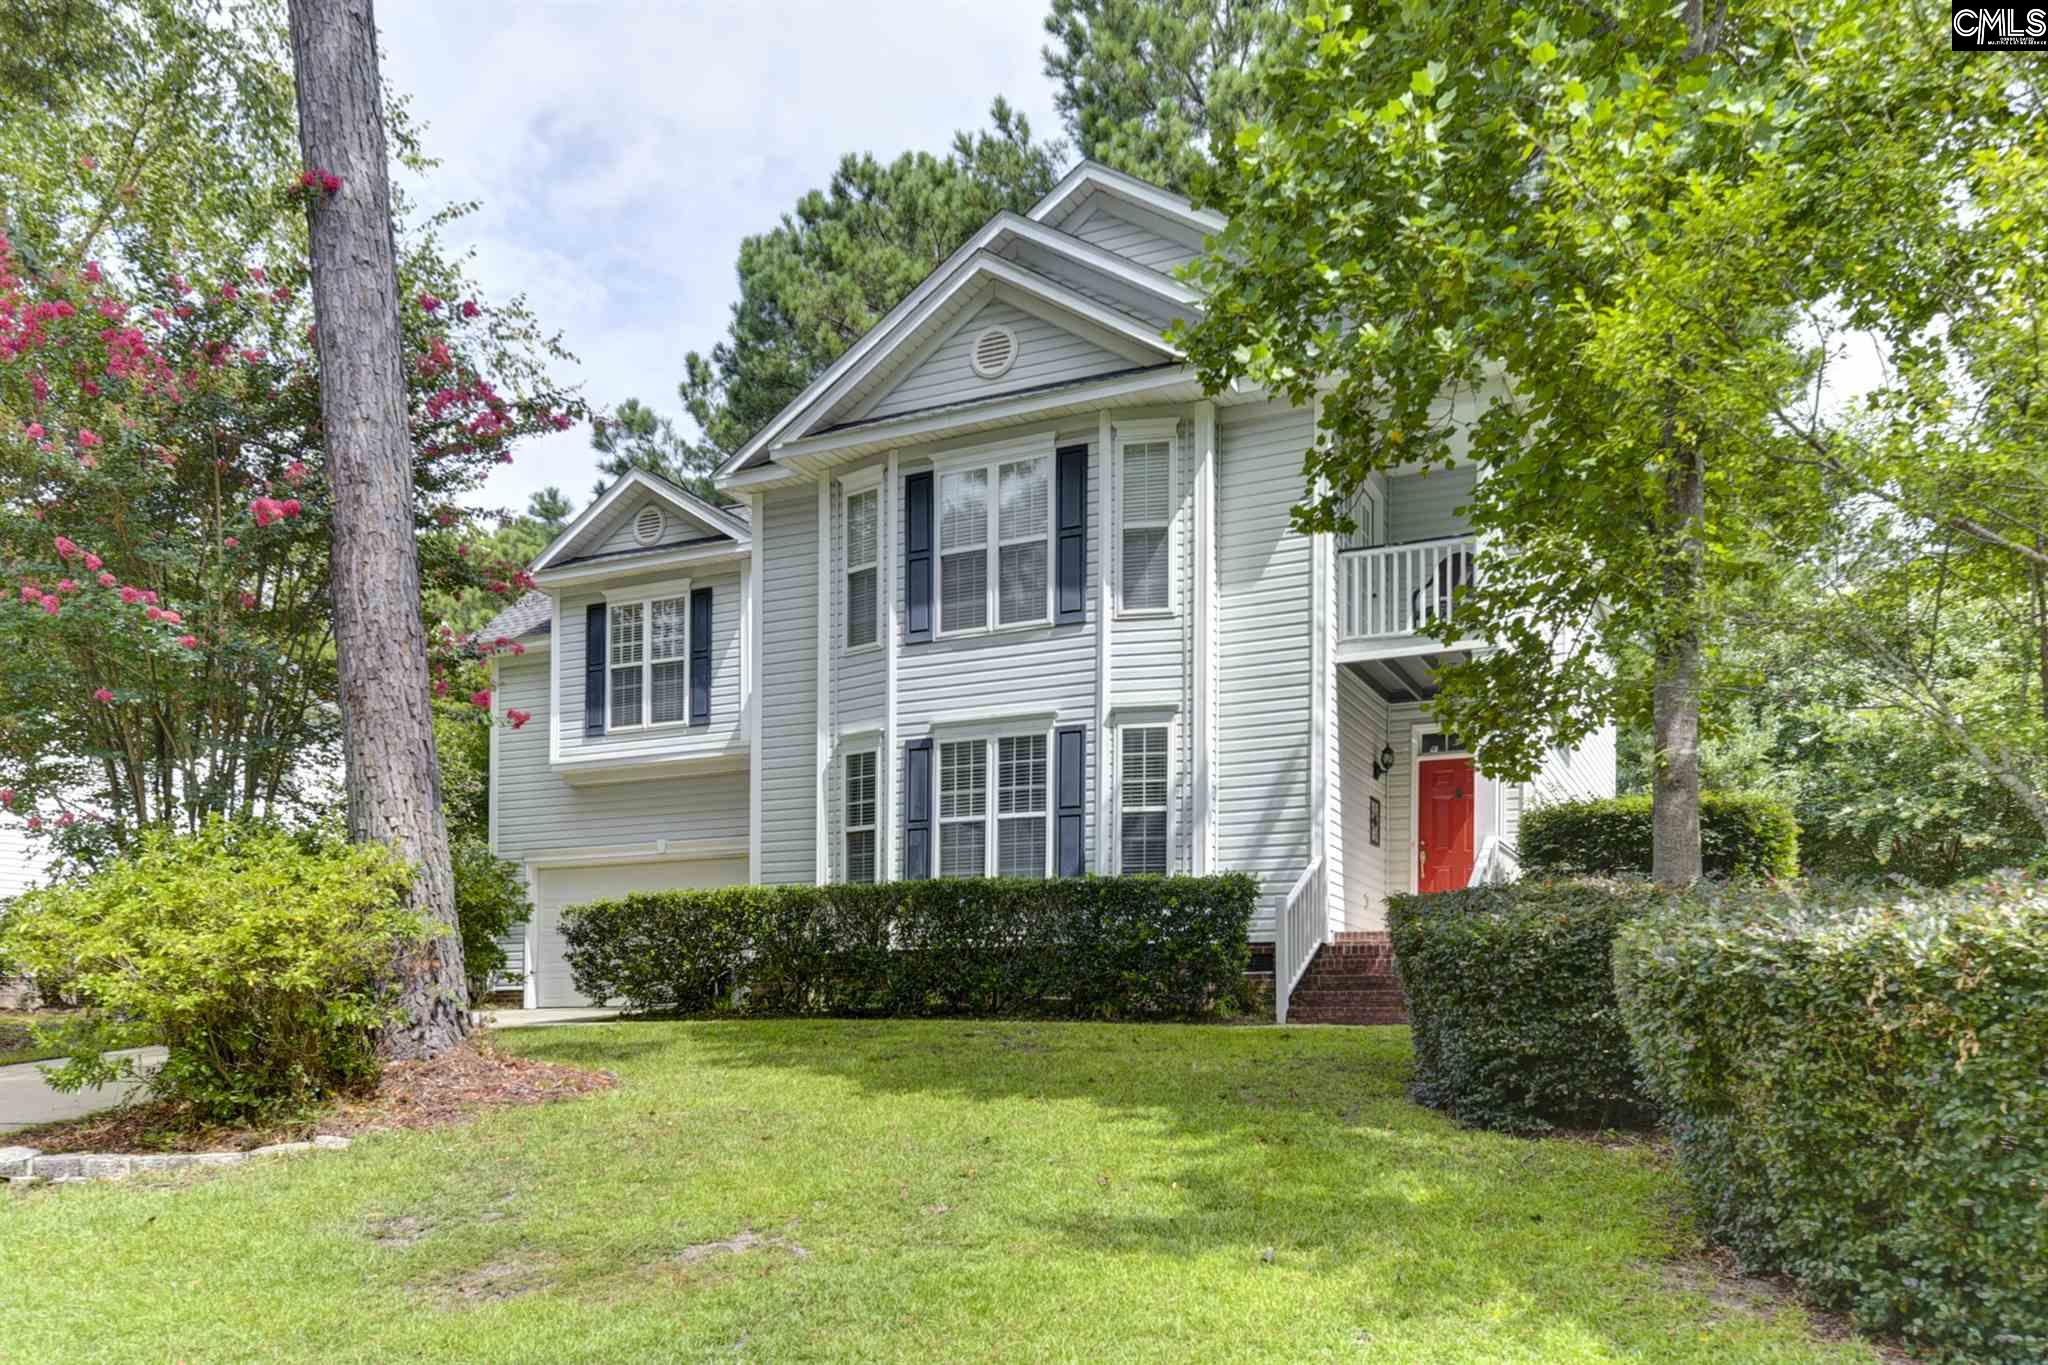 111 Waterton Columbia, SC 29229